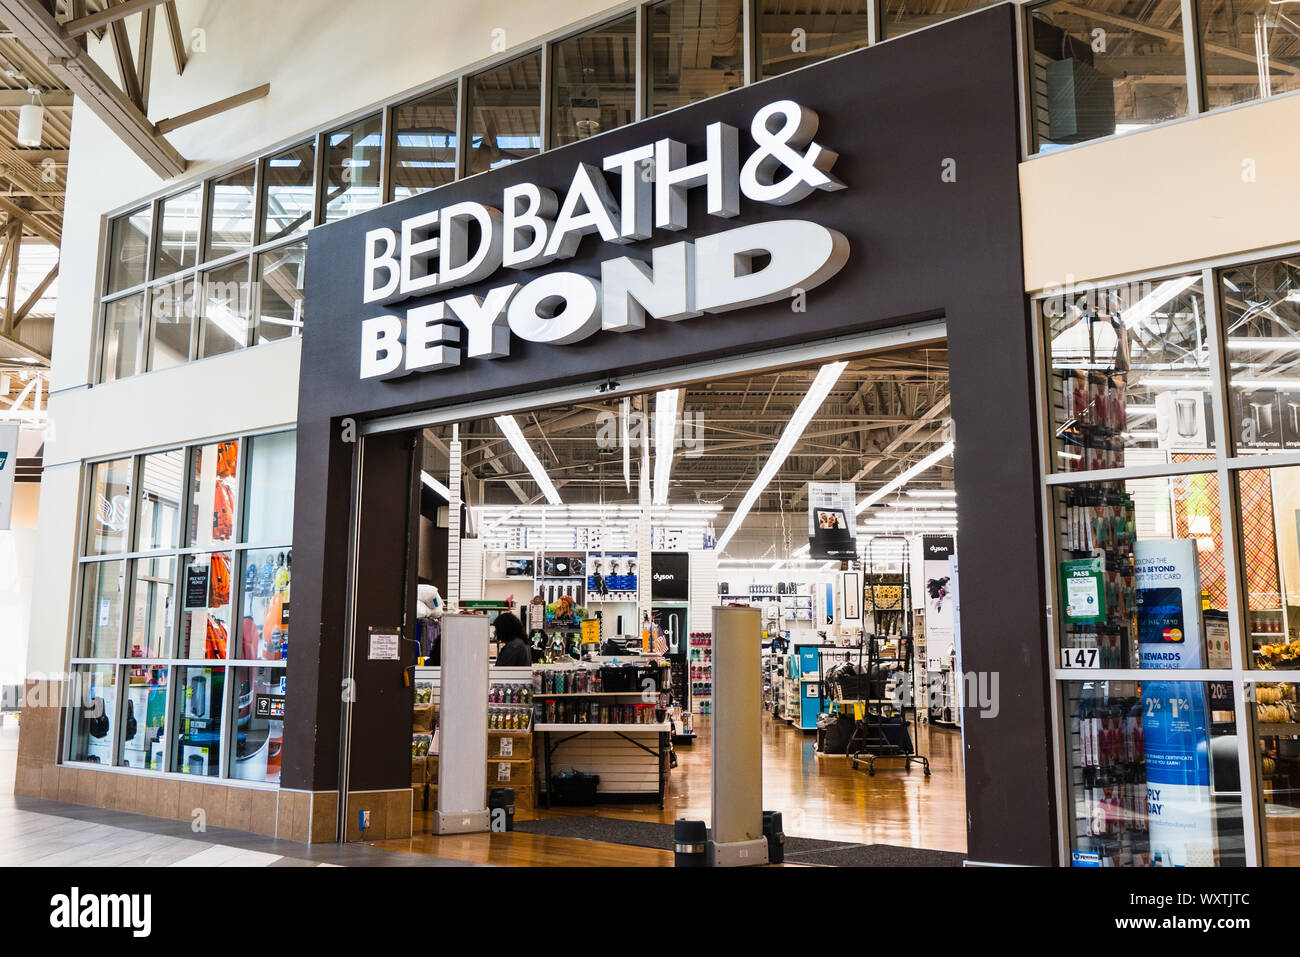 Bed Bath And Beyond Store High Resolution Stock Photography And Images Alamy